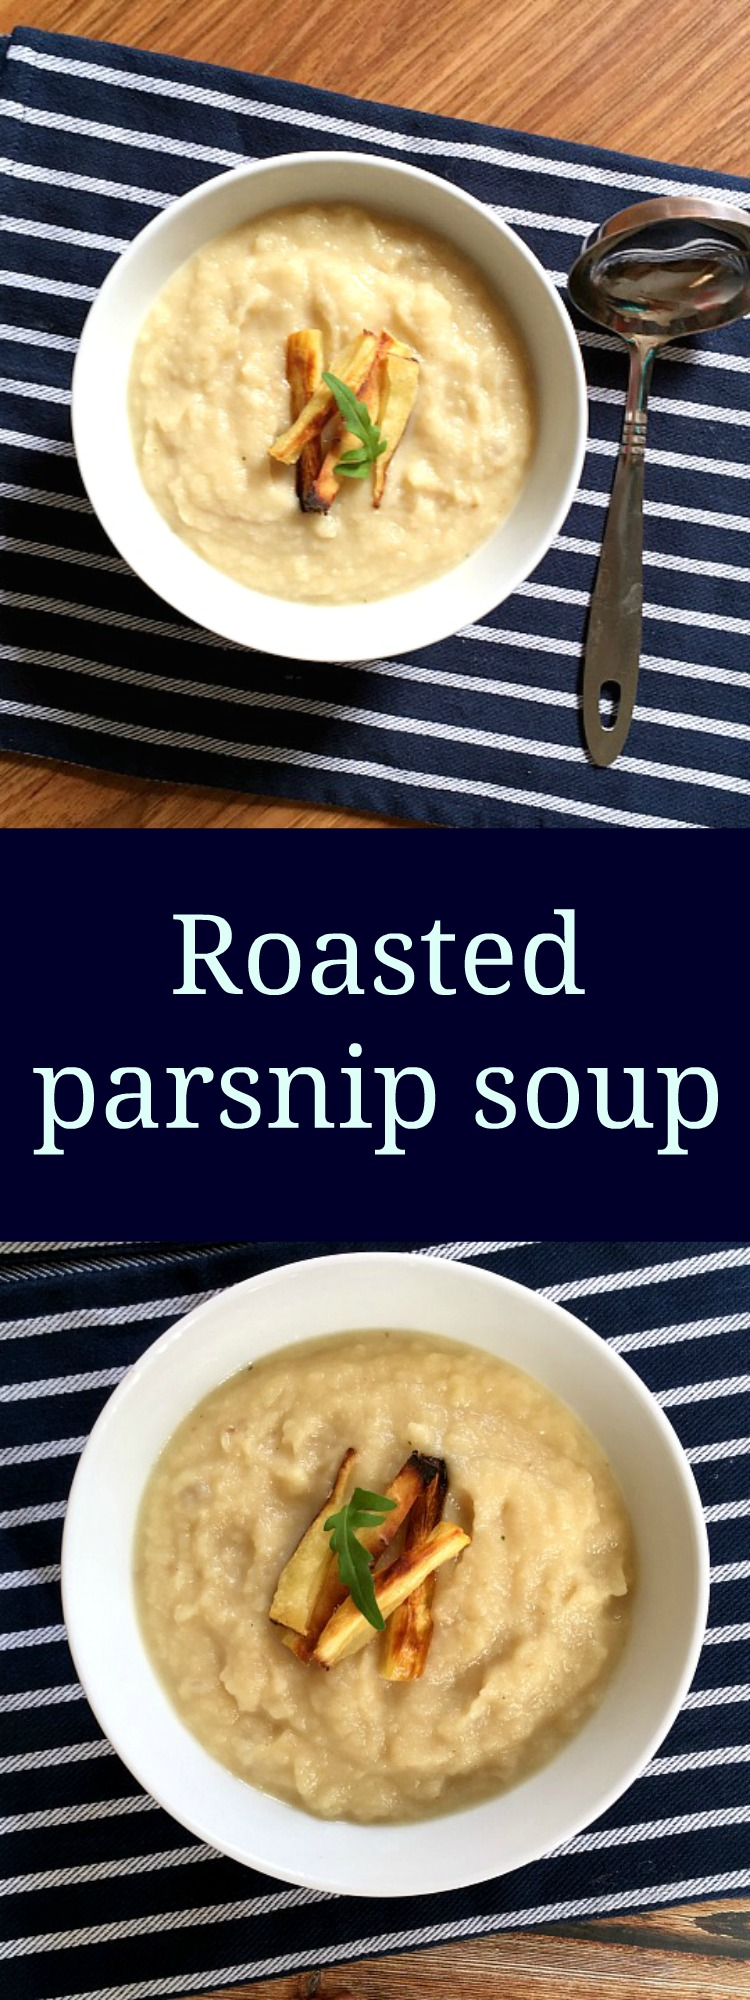 Roasted parsnip soup